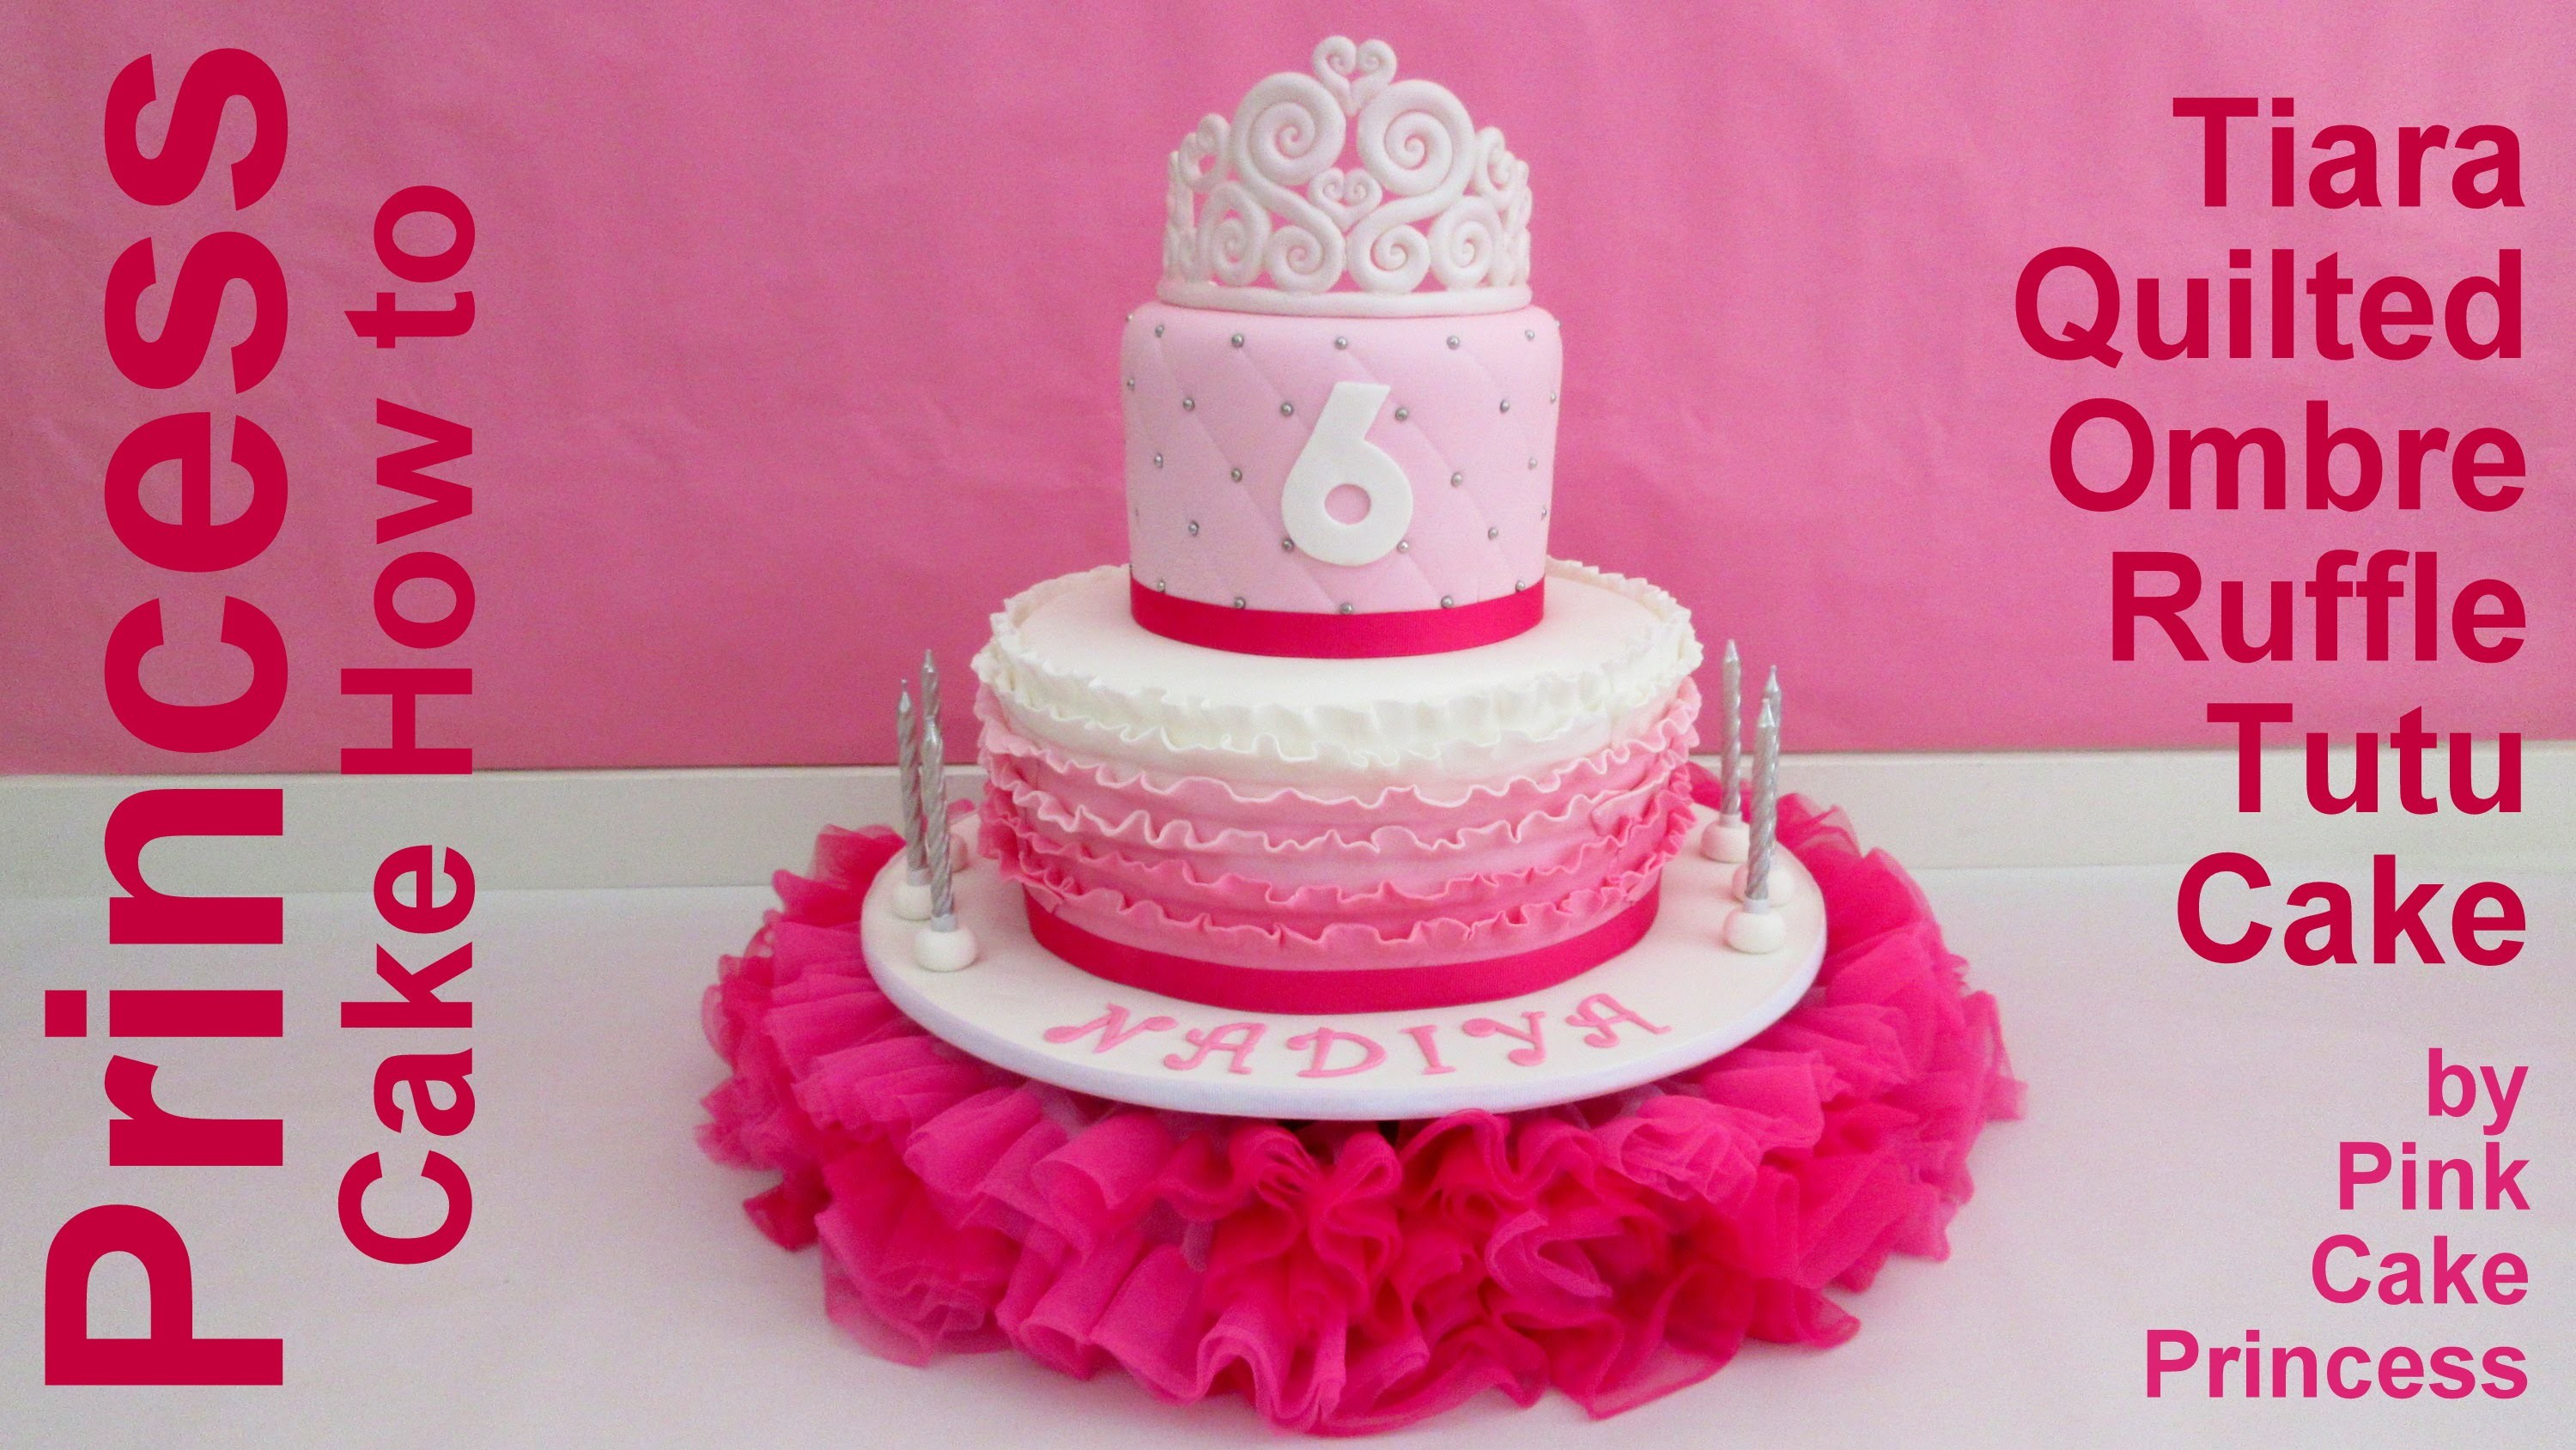 How to Make a Pink Princess Tutu Cake Stand & Tiara Quilted Ombre Ruffle Cake